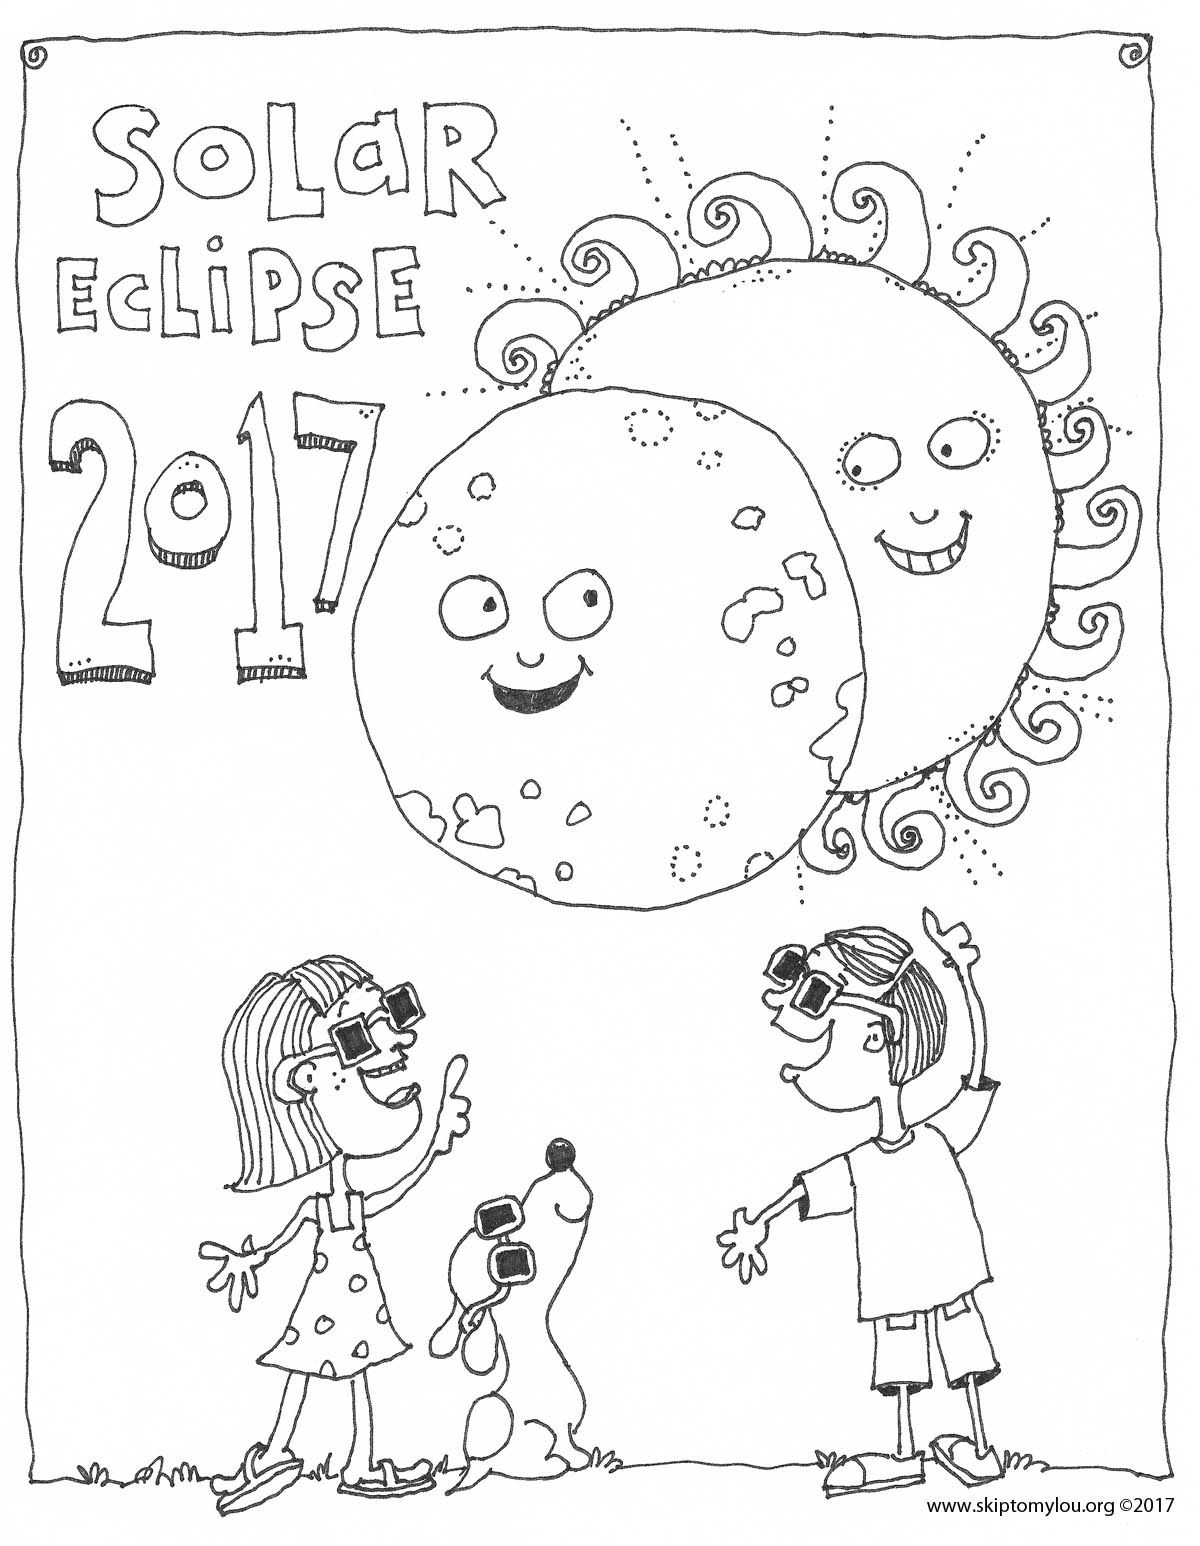 free printable coloring page and memory keeper for the solar eclipse